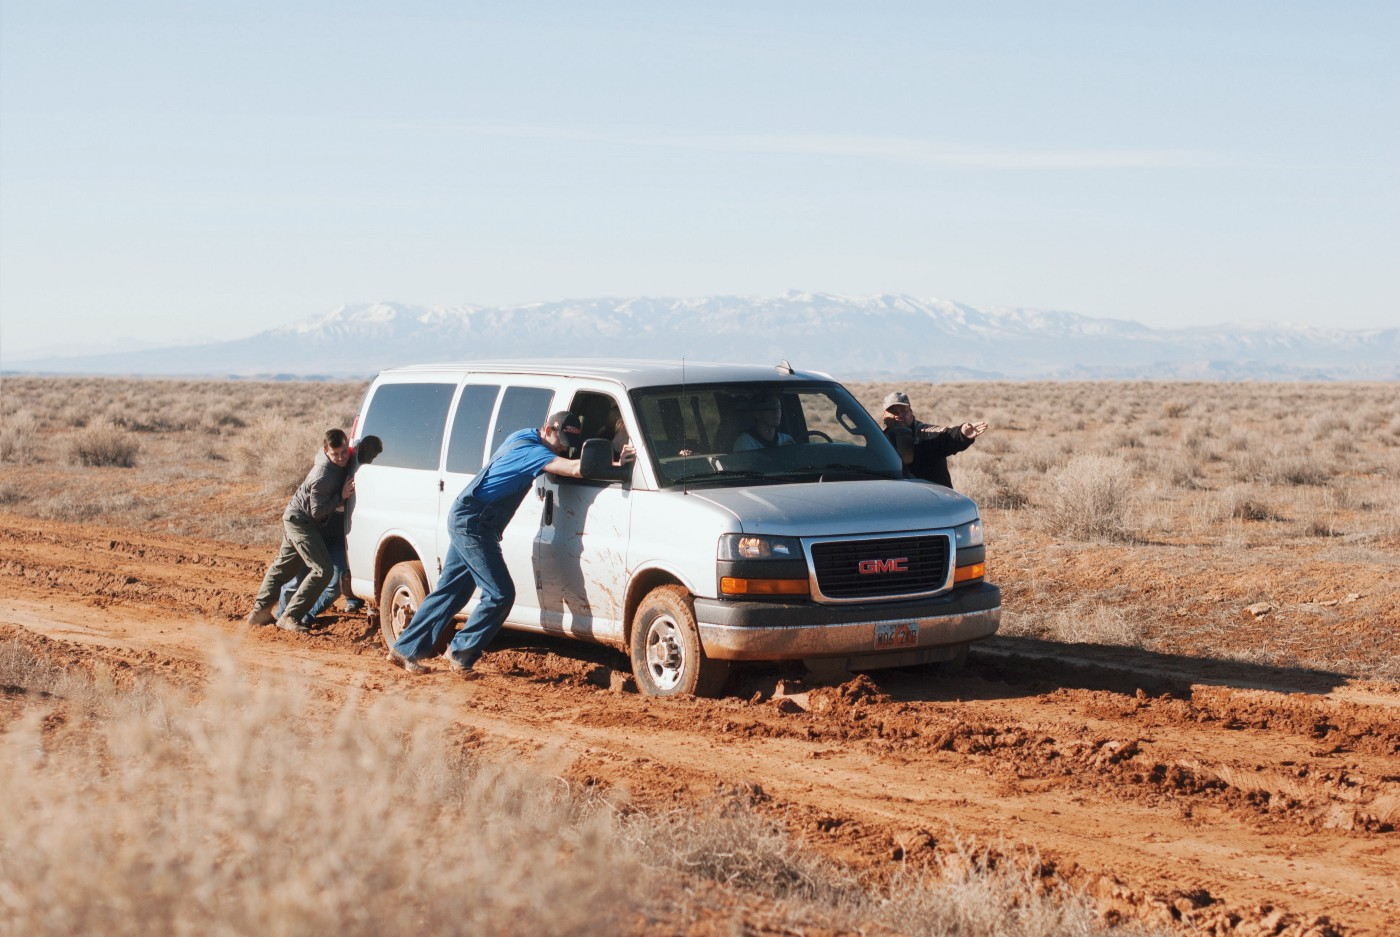 Old white econoliner-type van stuck in the mud in a remote area being pushed by three people